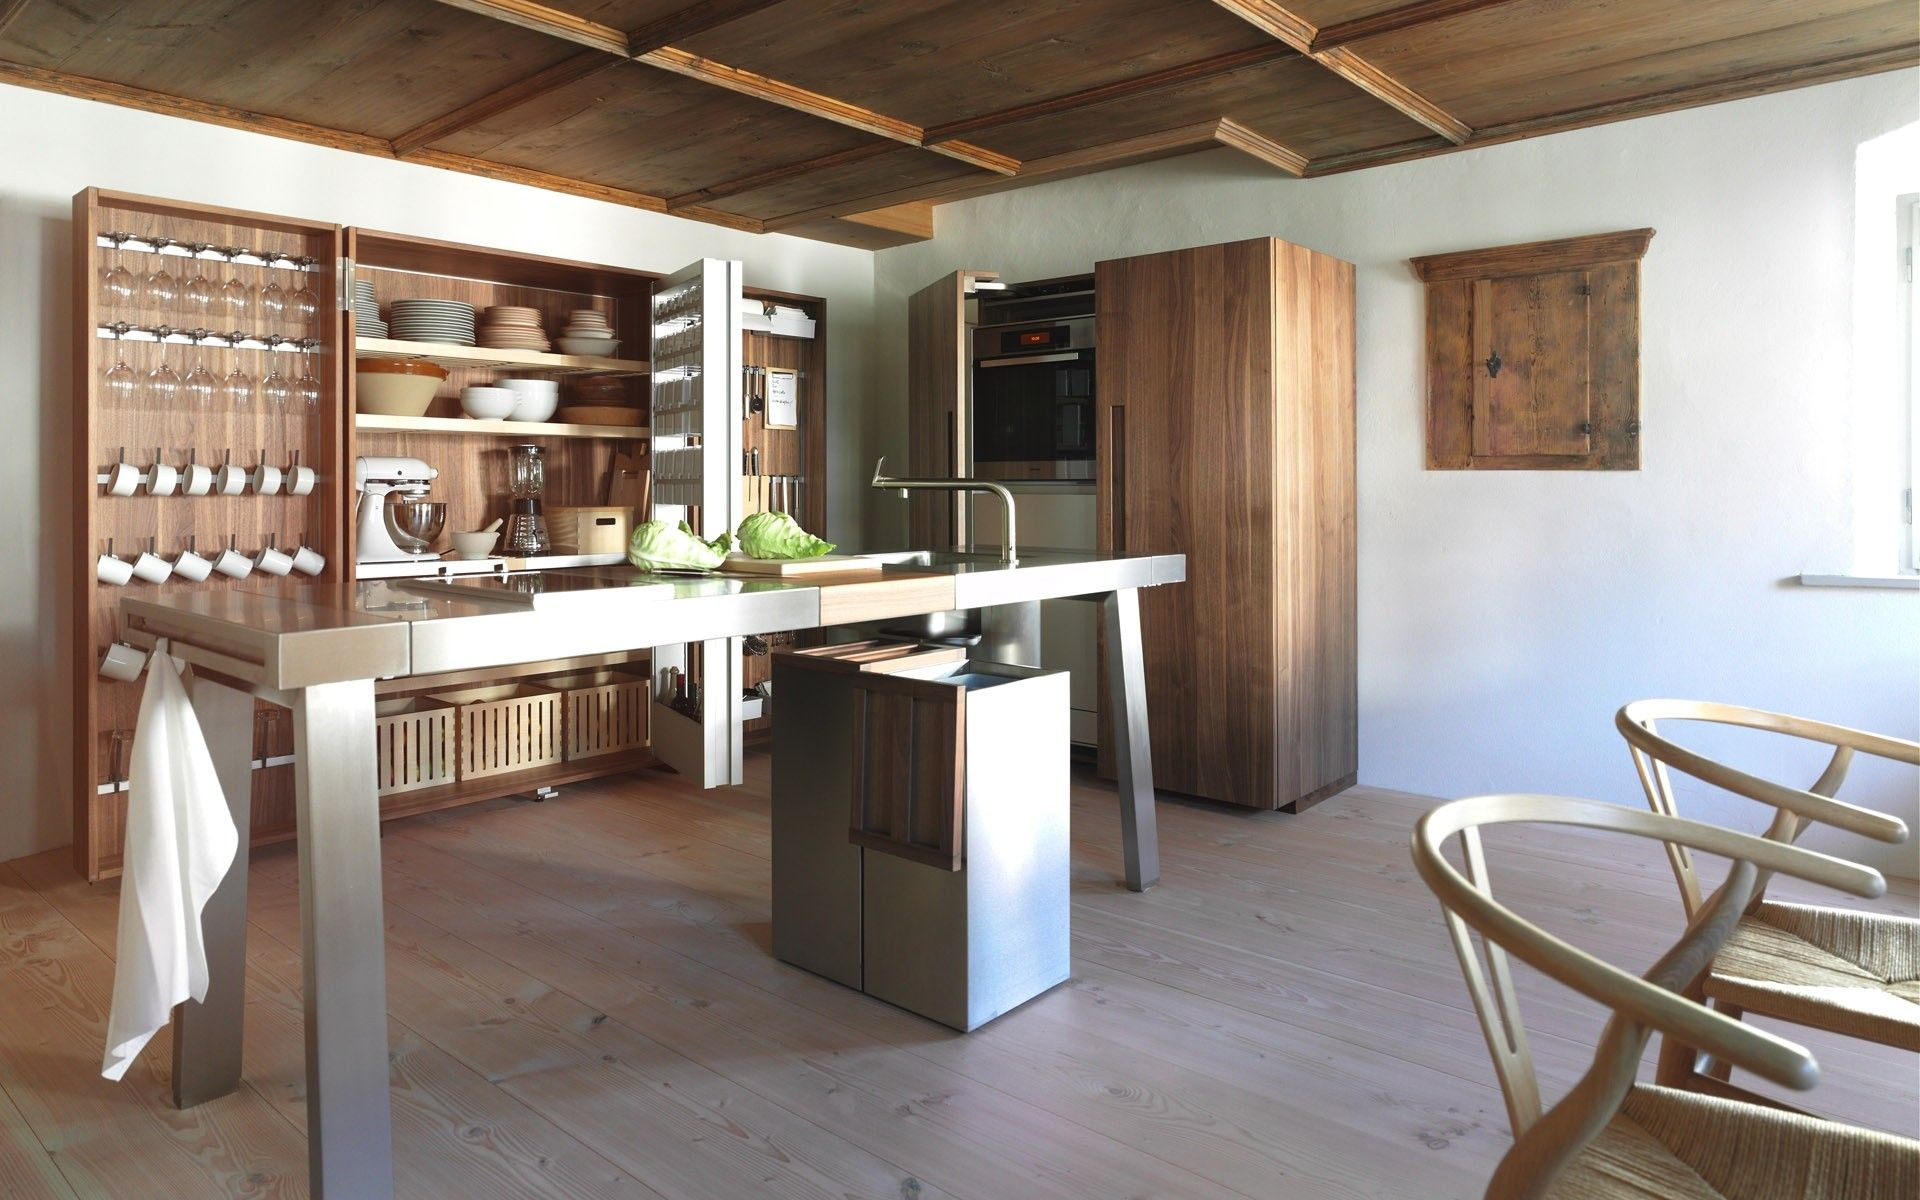 The Bulthaup Kitchen Workshop Is The Perfect Complement To The